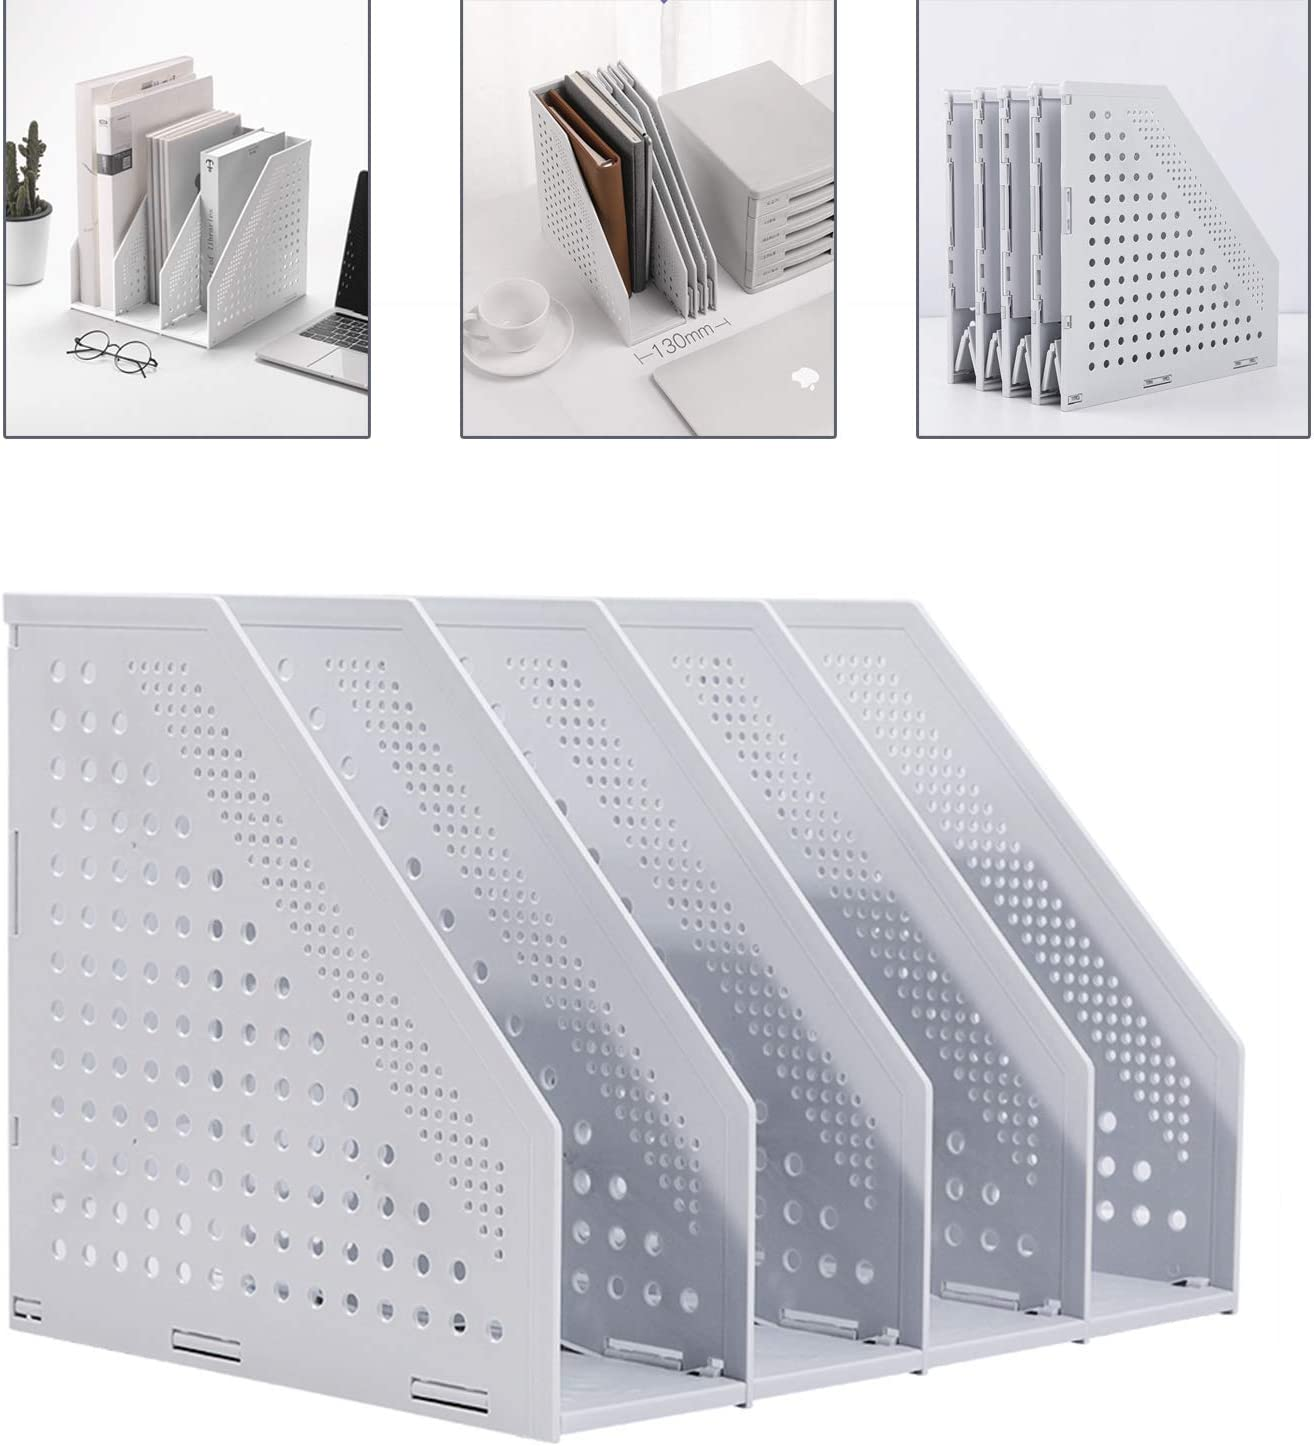 Deli Collapsible Magazine File Holder/Desk Organizer for Office Organization and Storage with 4 Vertical Compartments